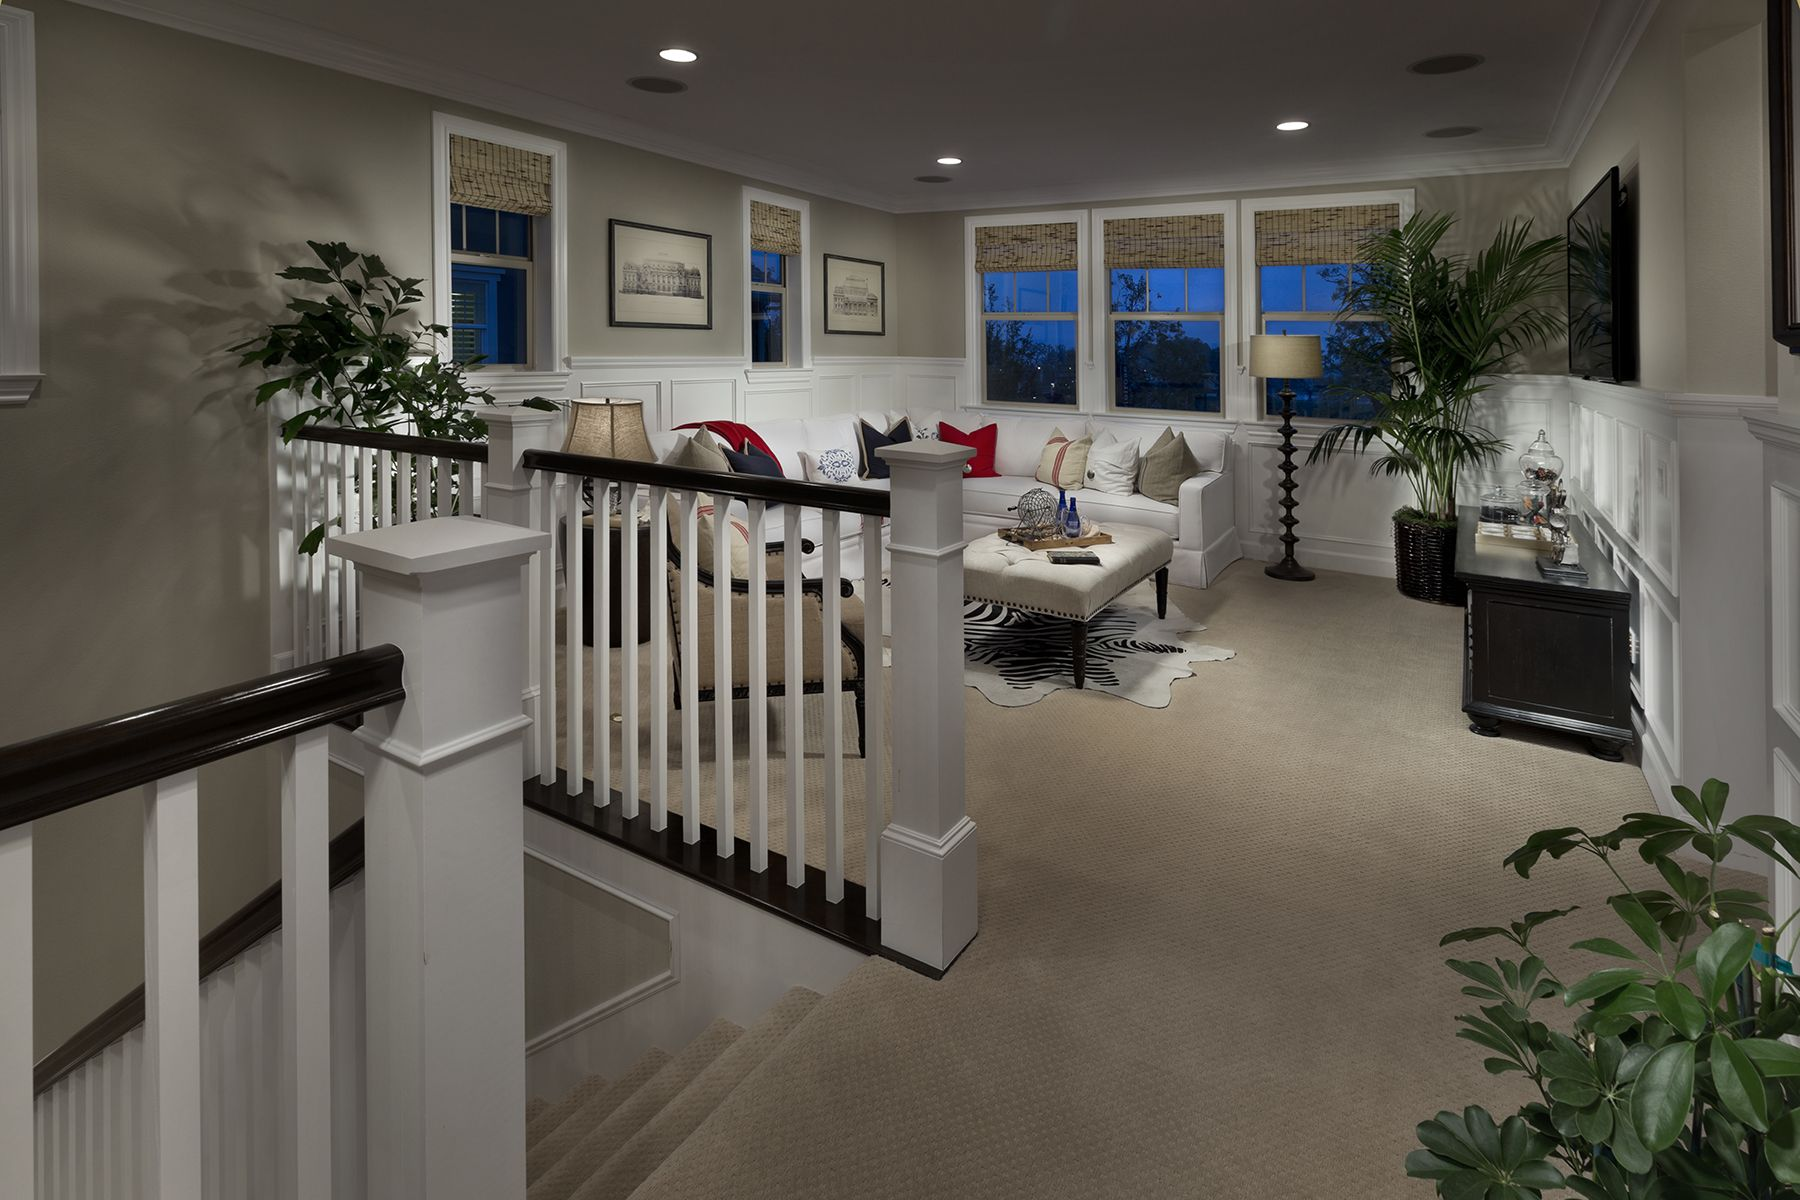 Melrose By Ryland Homes Plan 1 Home Is Where The Heart Is Pinterest Lofts Loft Ideas